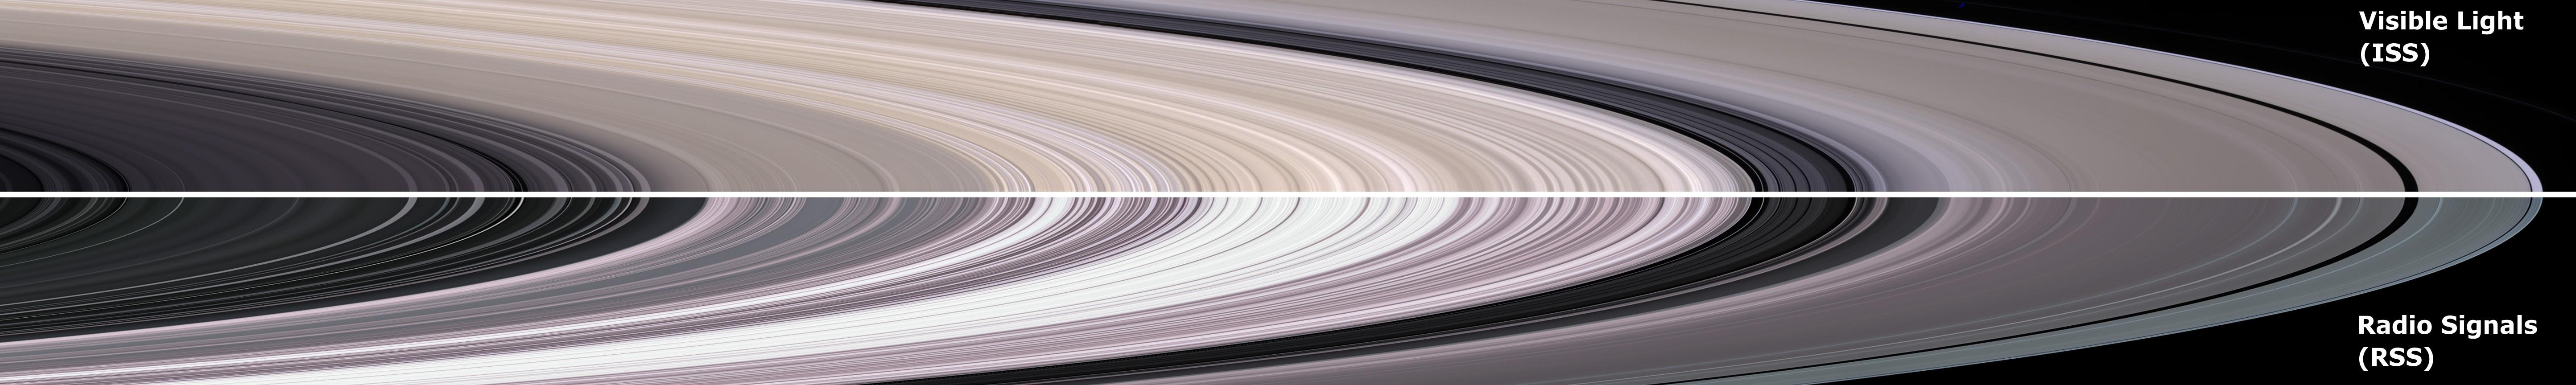 Long image of Saturn's rings